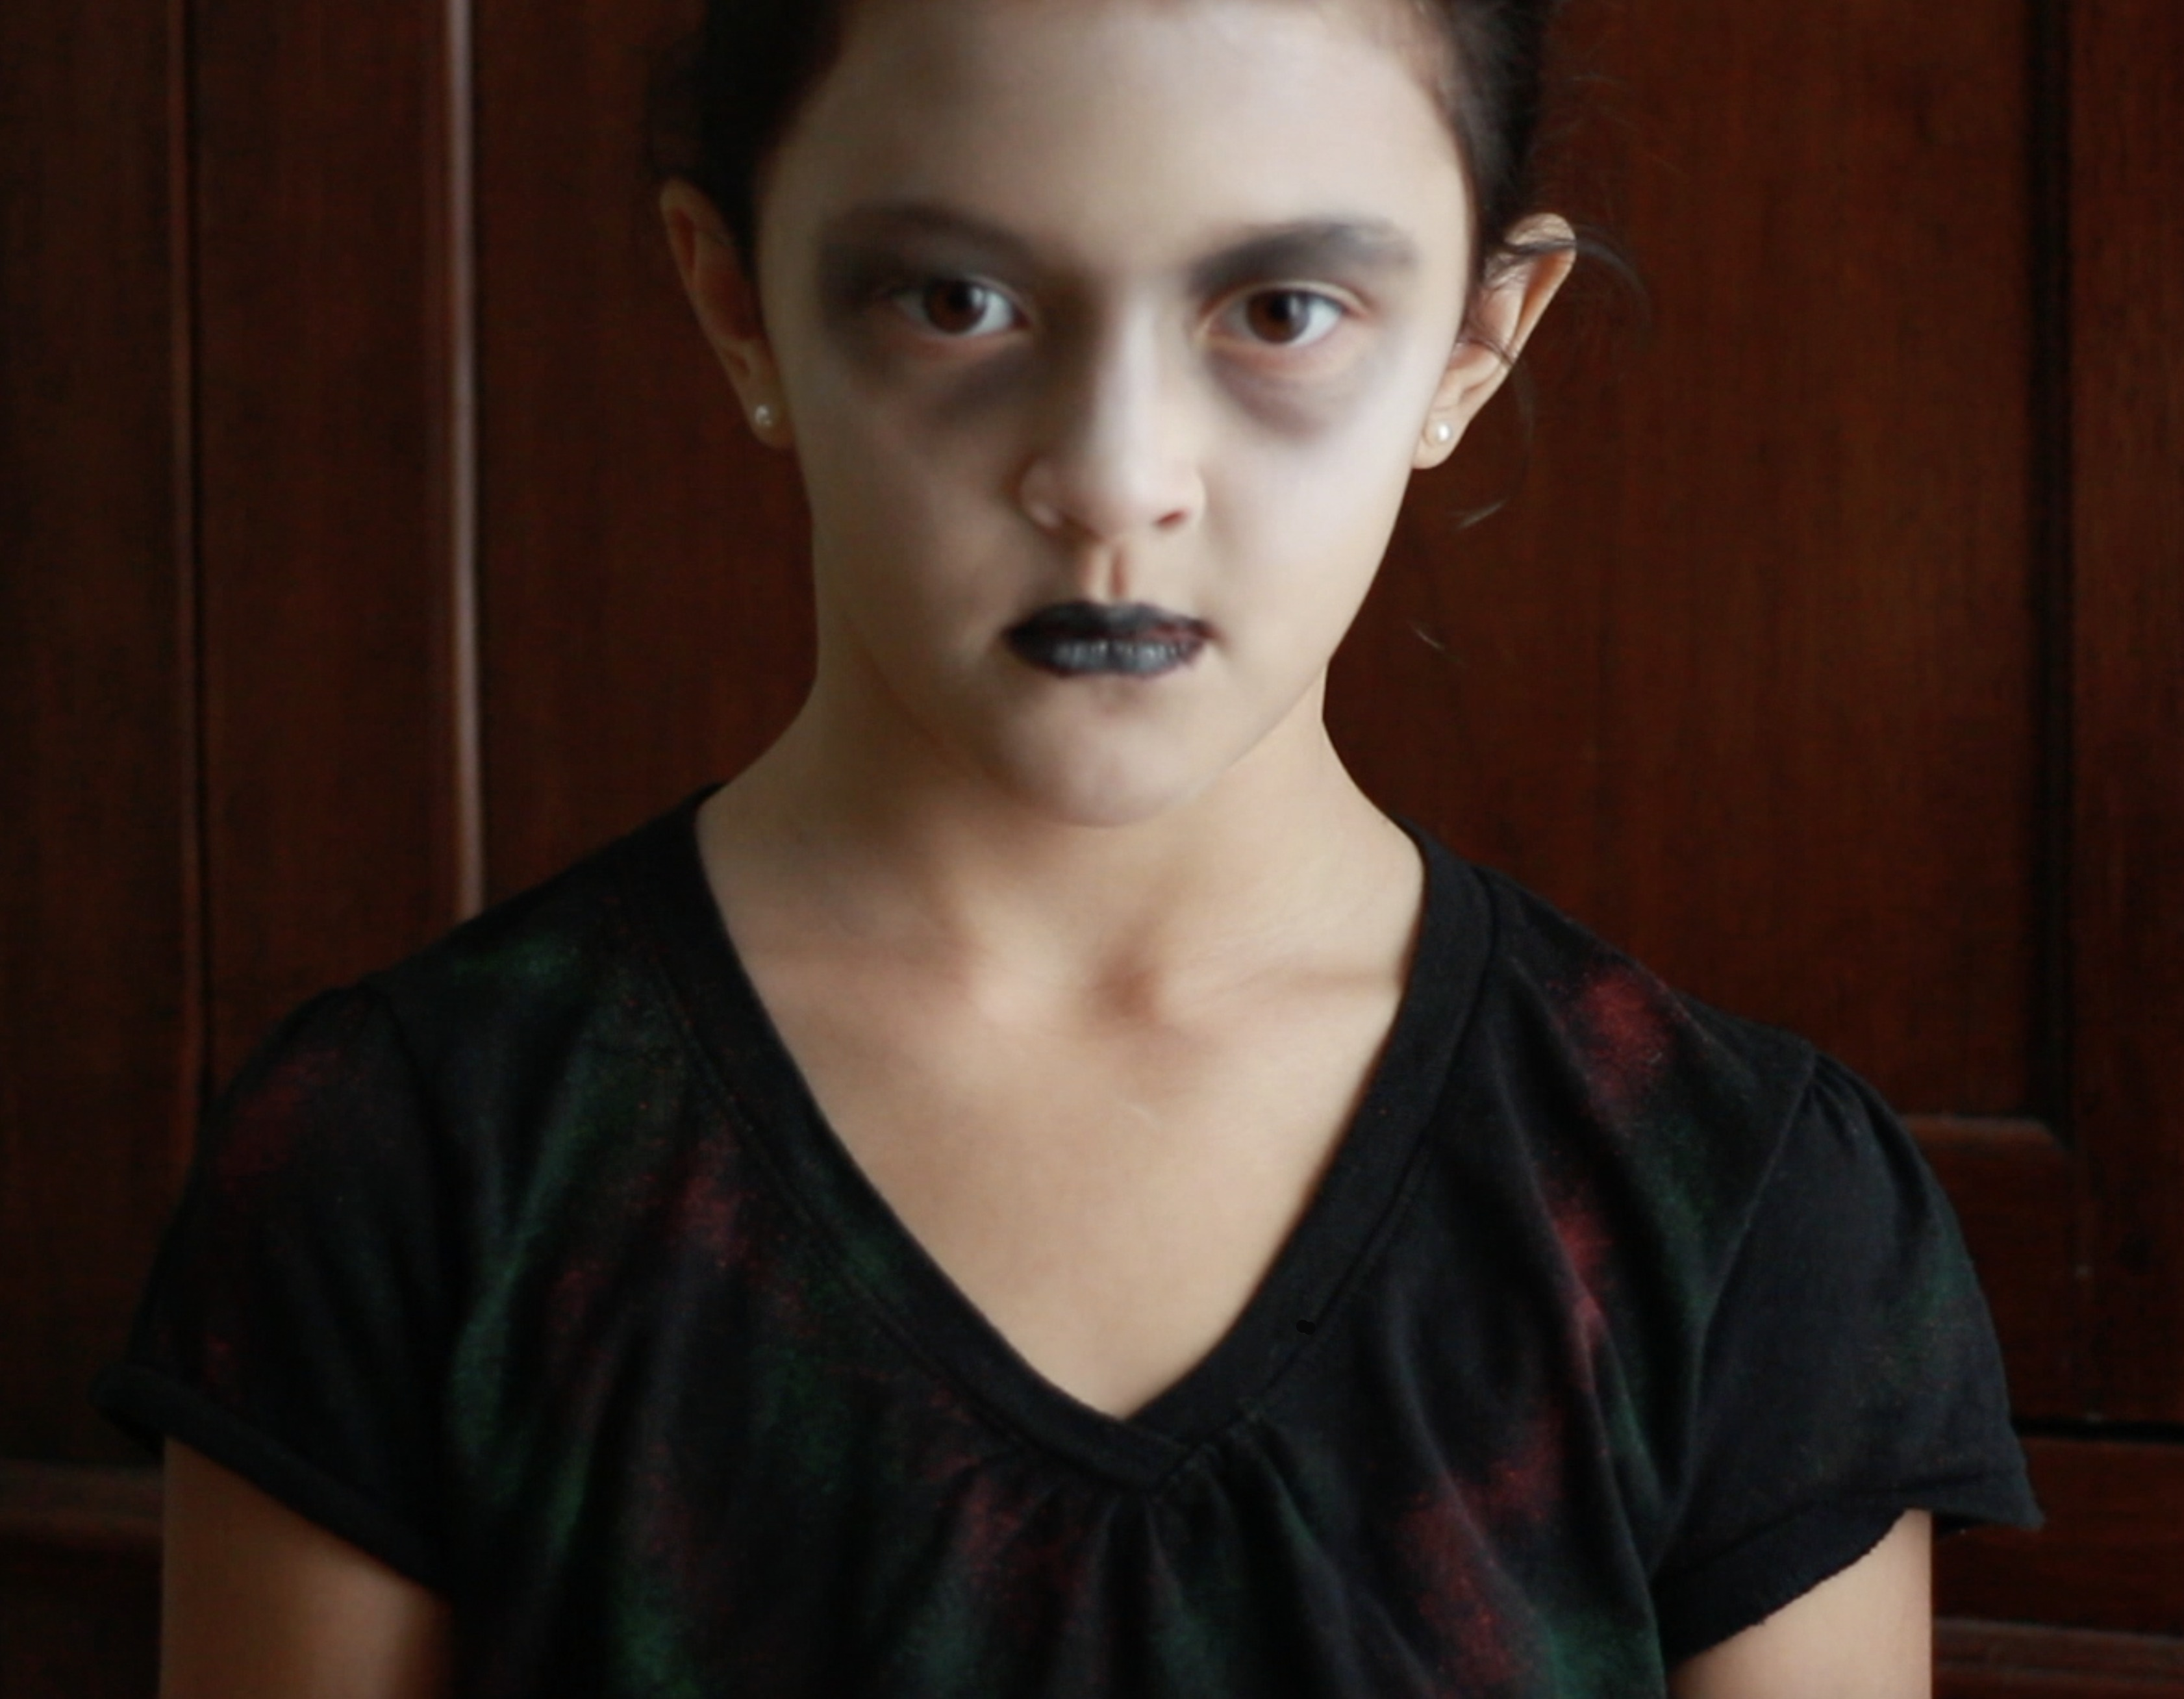 Zombie t-shirt and makeup